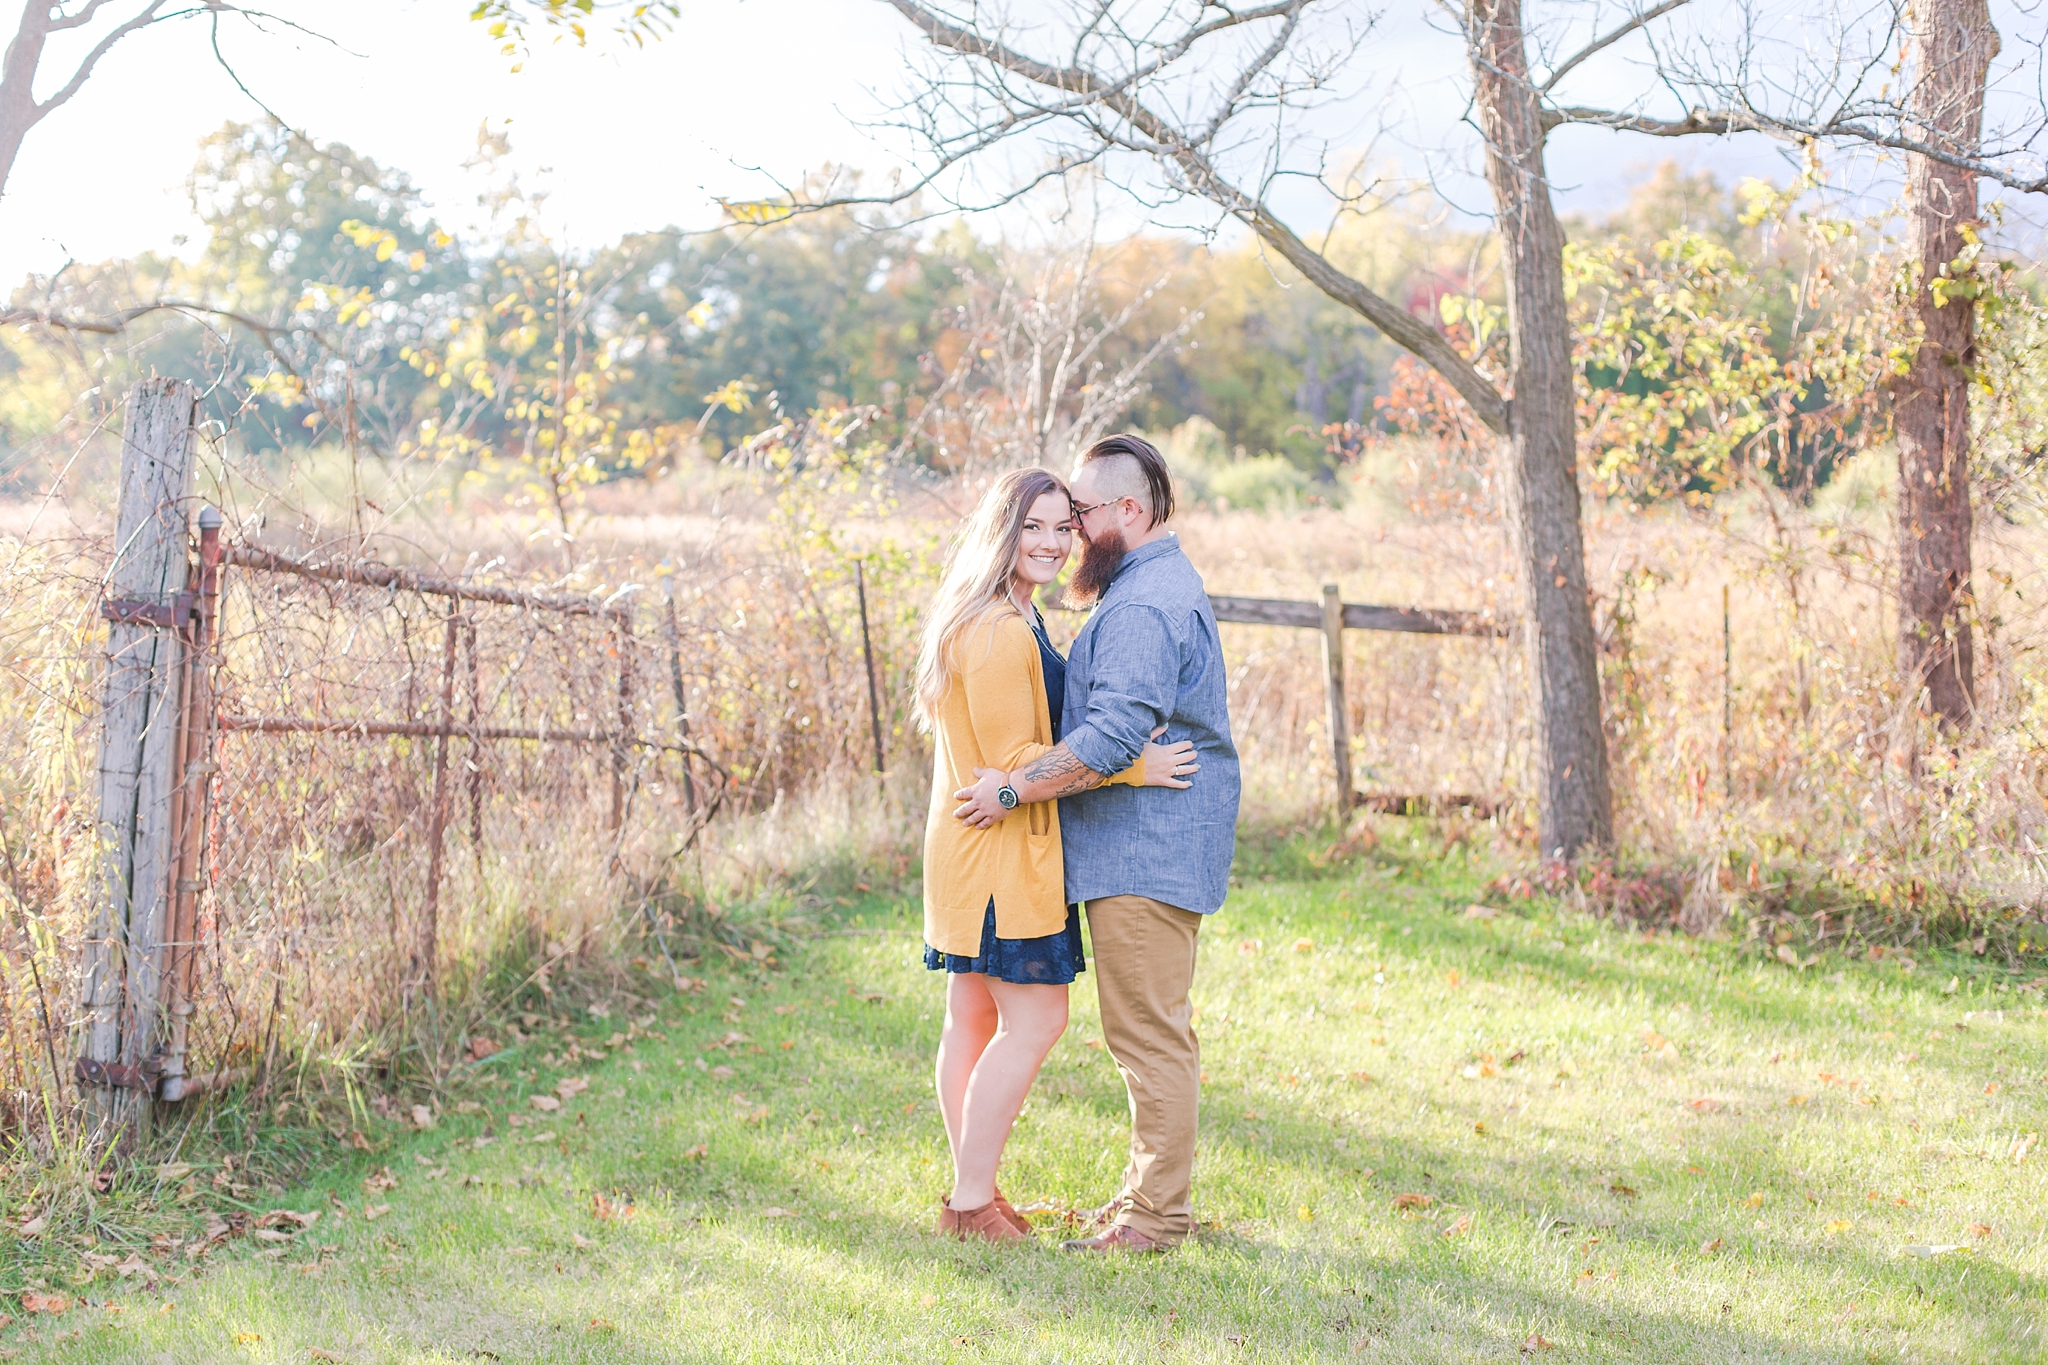 cozy-fall-engagement-photos-at-an-old-family-farm-in-monroe-michigan-by-courtney-carolyn-photography_0009.jpg